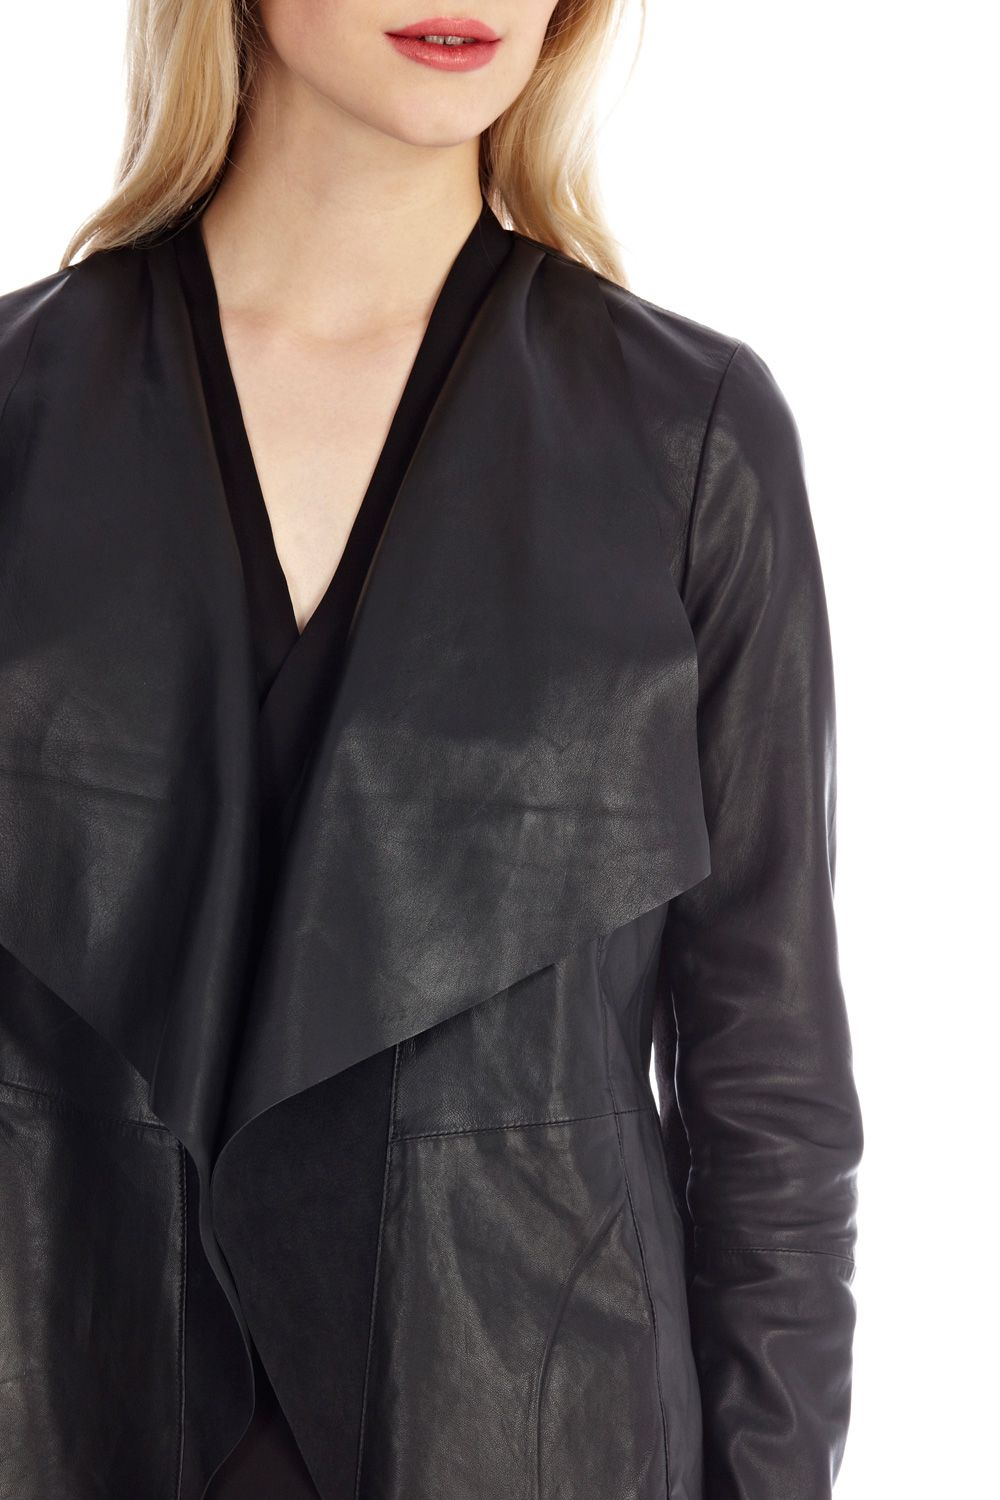 Find great deals on eBay for black waterfall jacket. Shop with confidence.